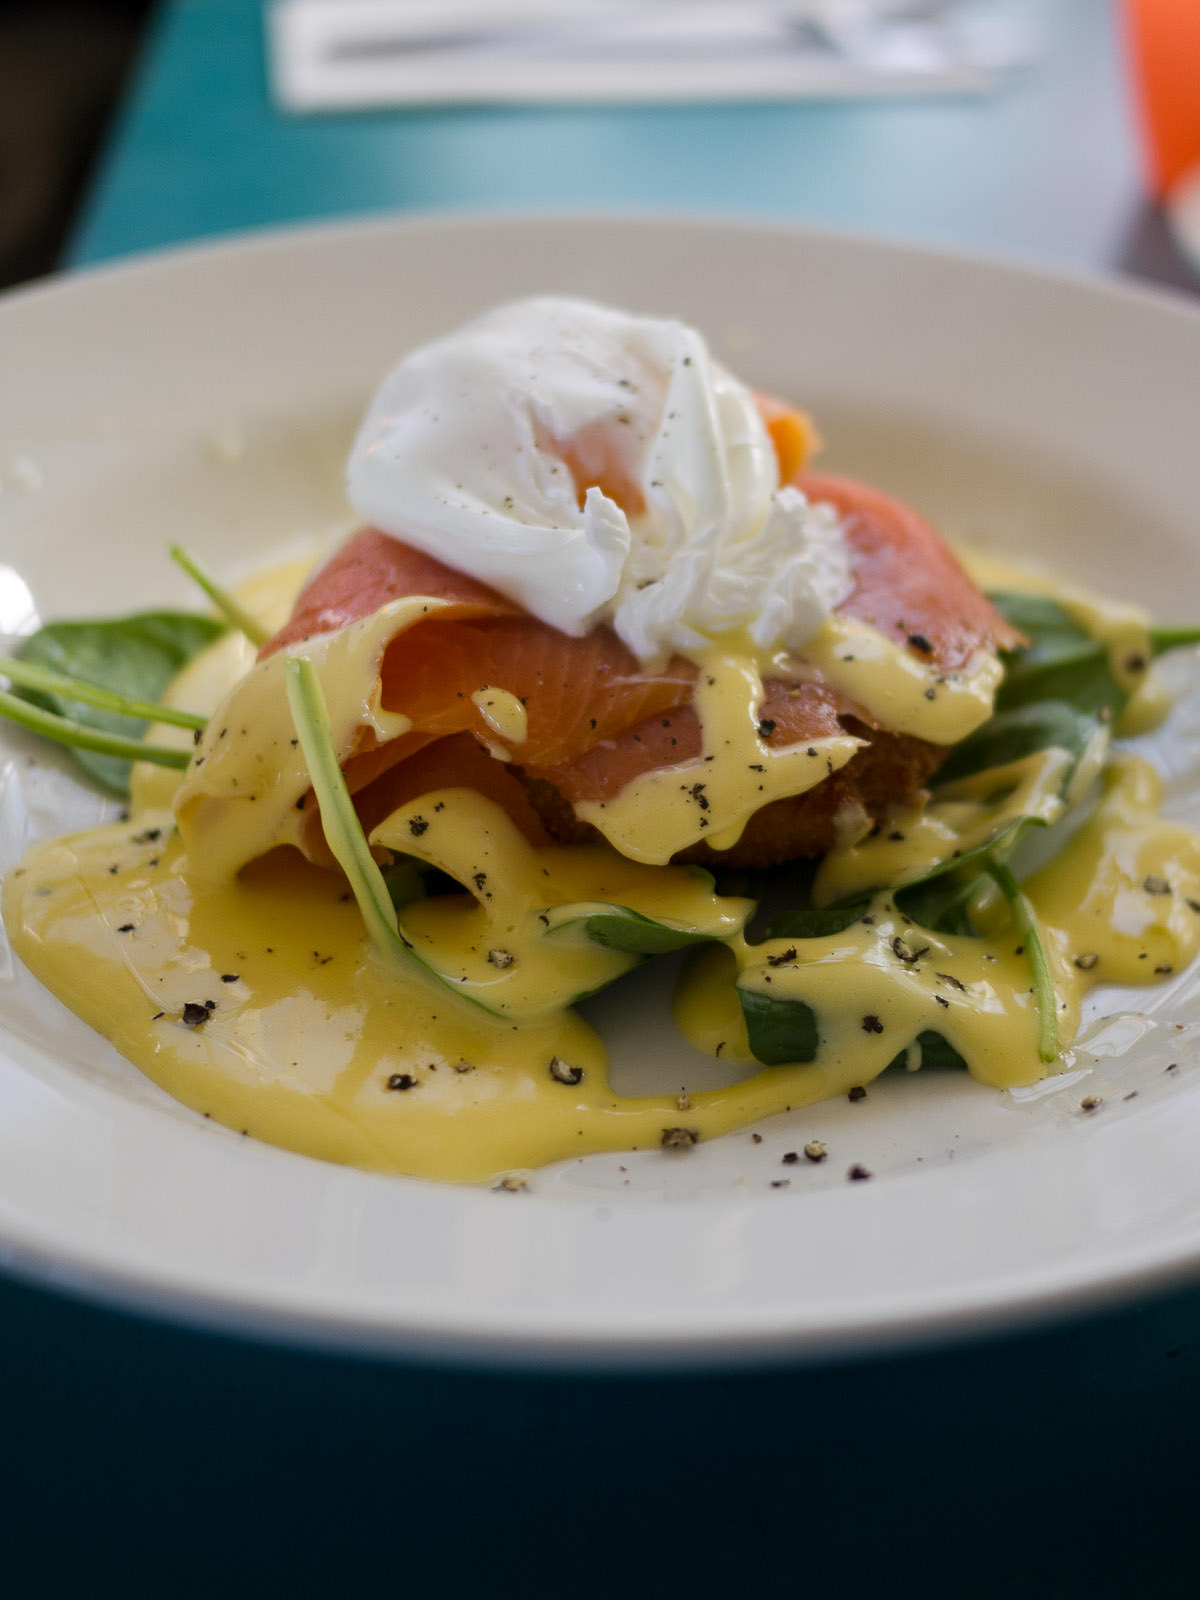 Blackboard special - lemon & pesto potato cake, smoked salmon, spinach, poached egg and hollandaise sauce (AU$13.50)